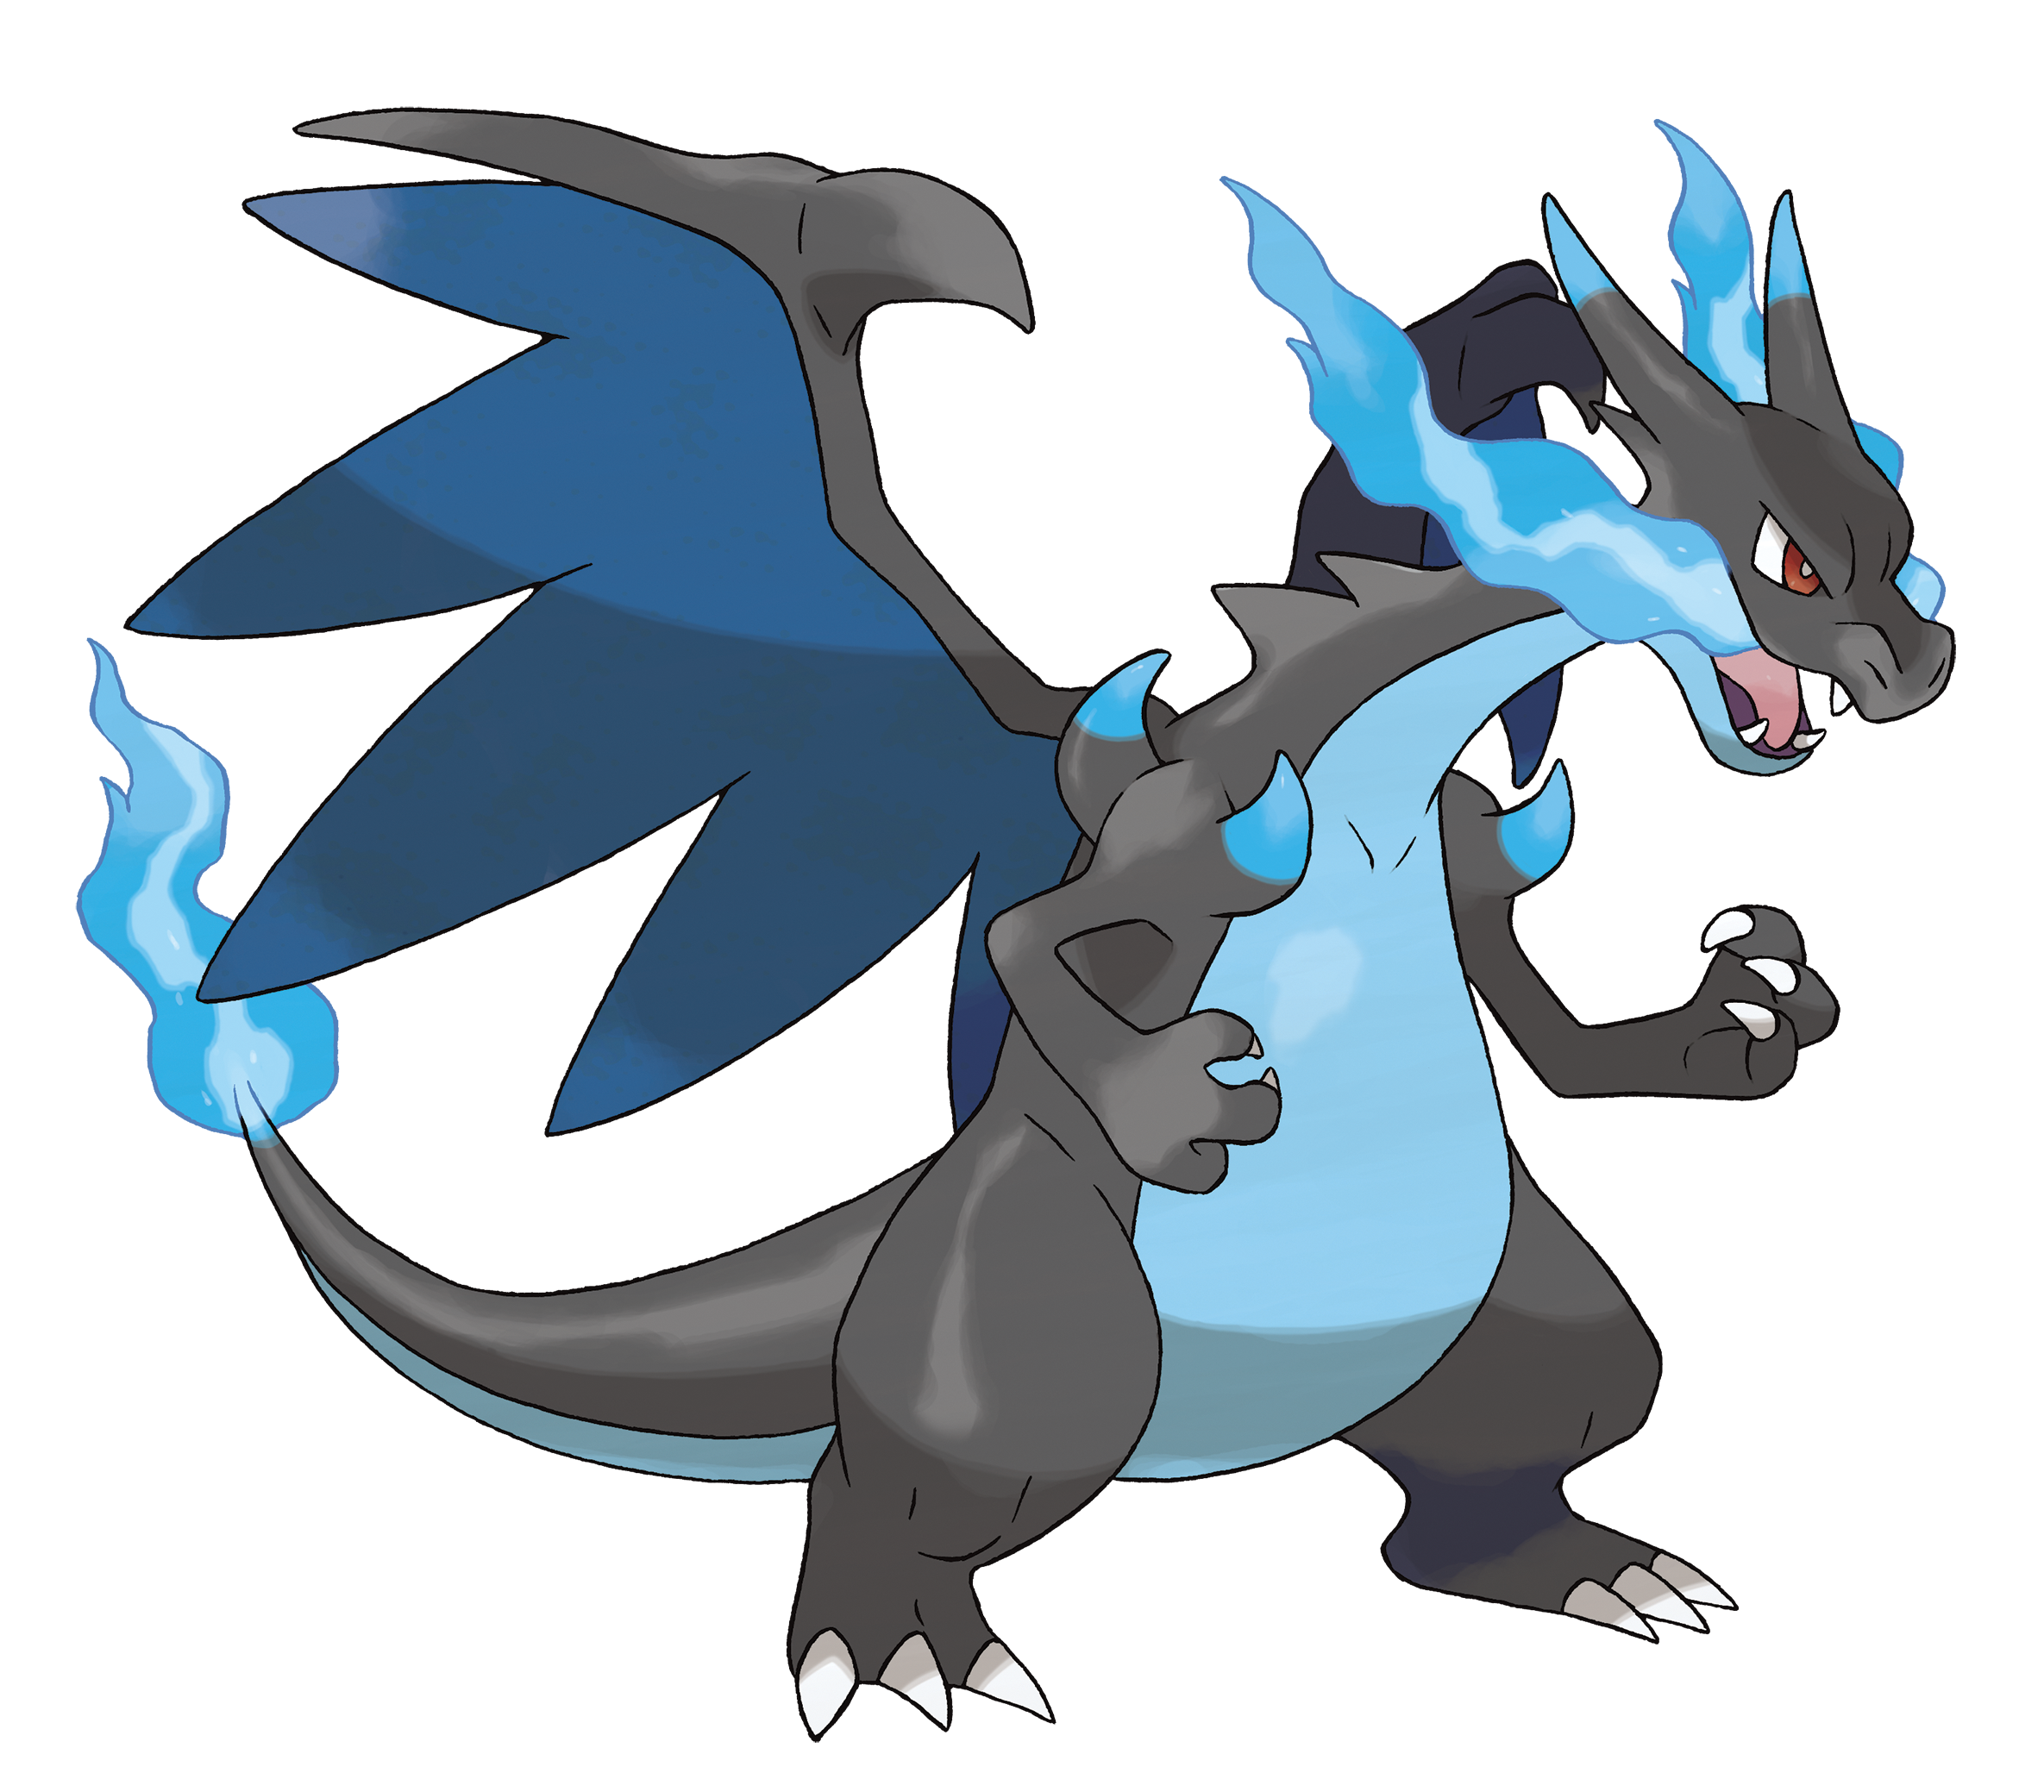 File:006MCharizard.png